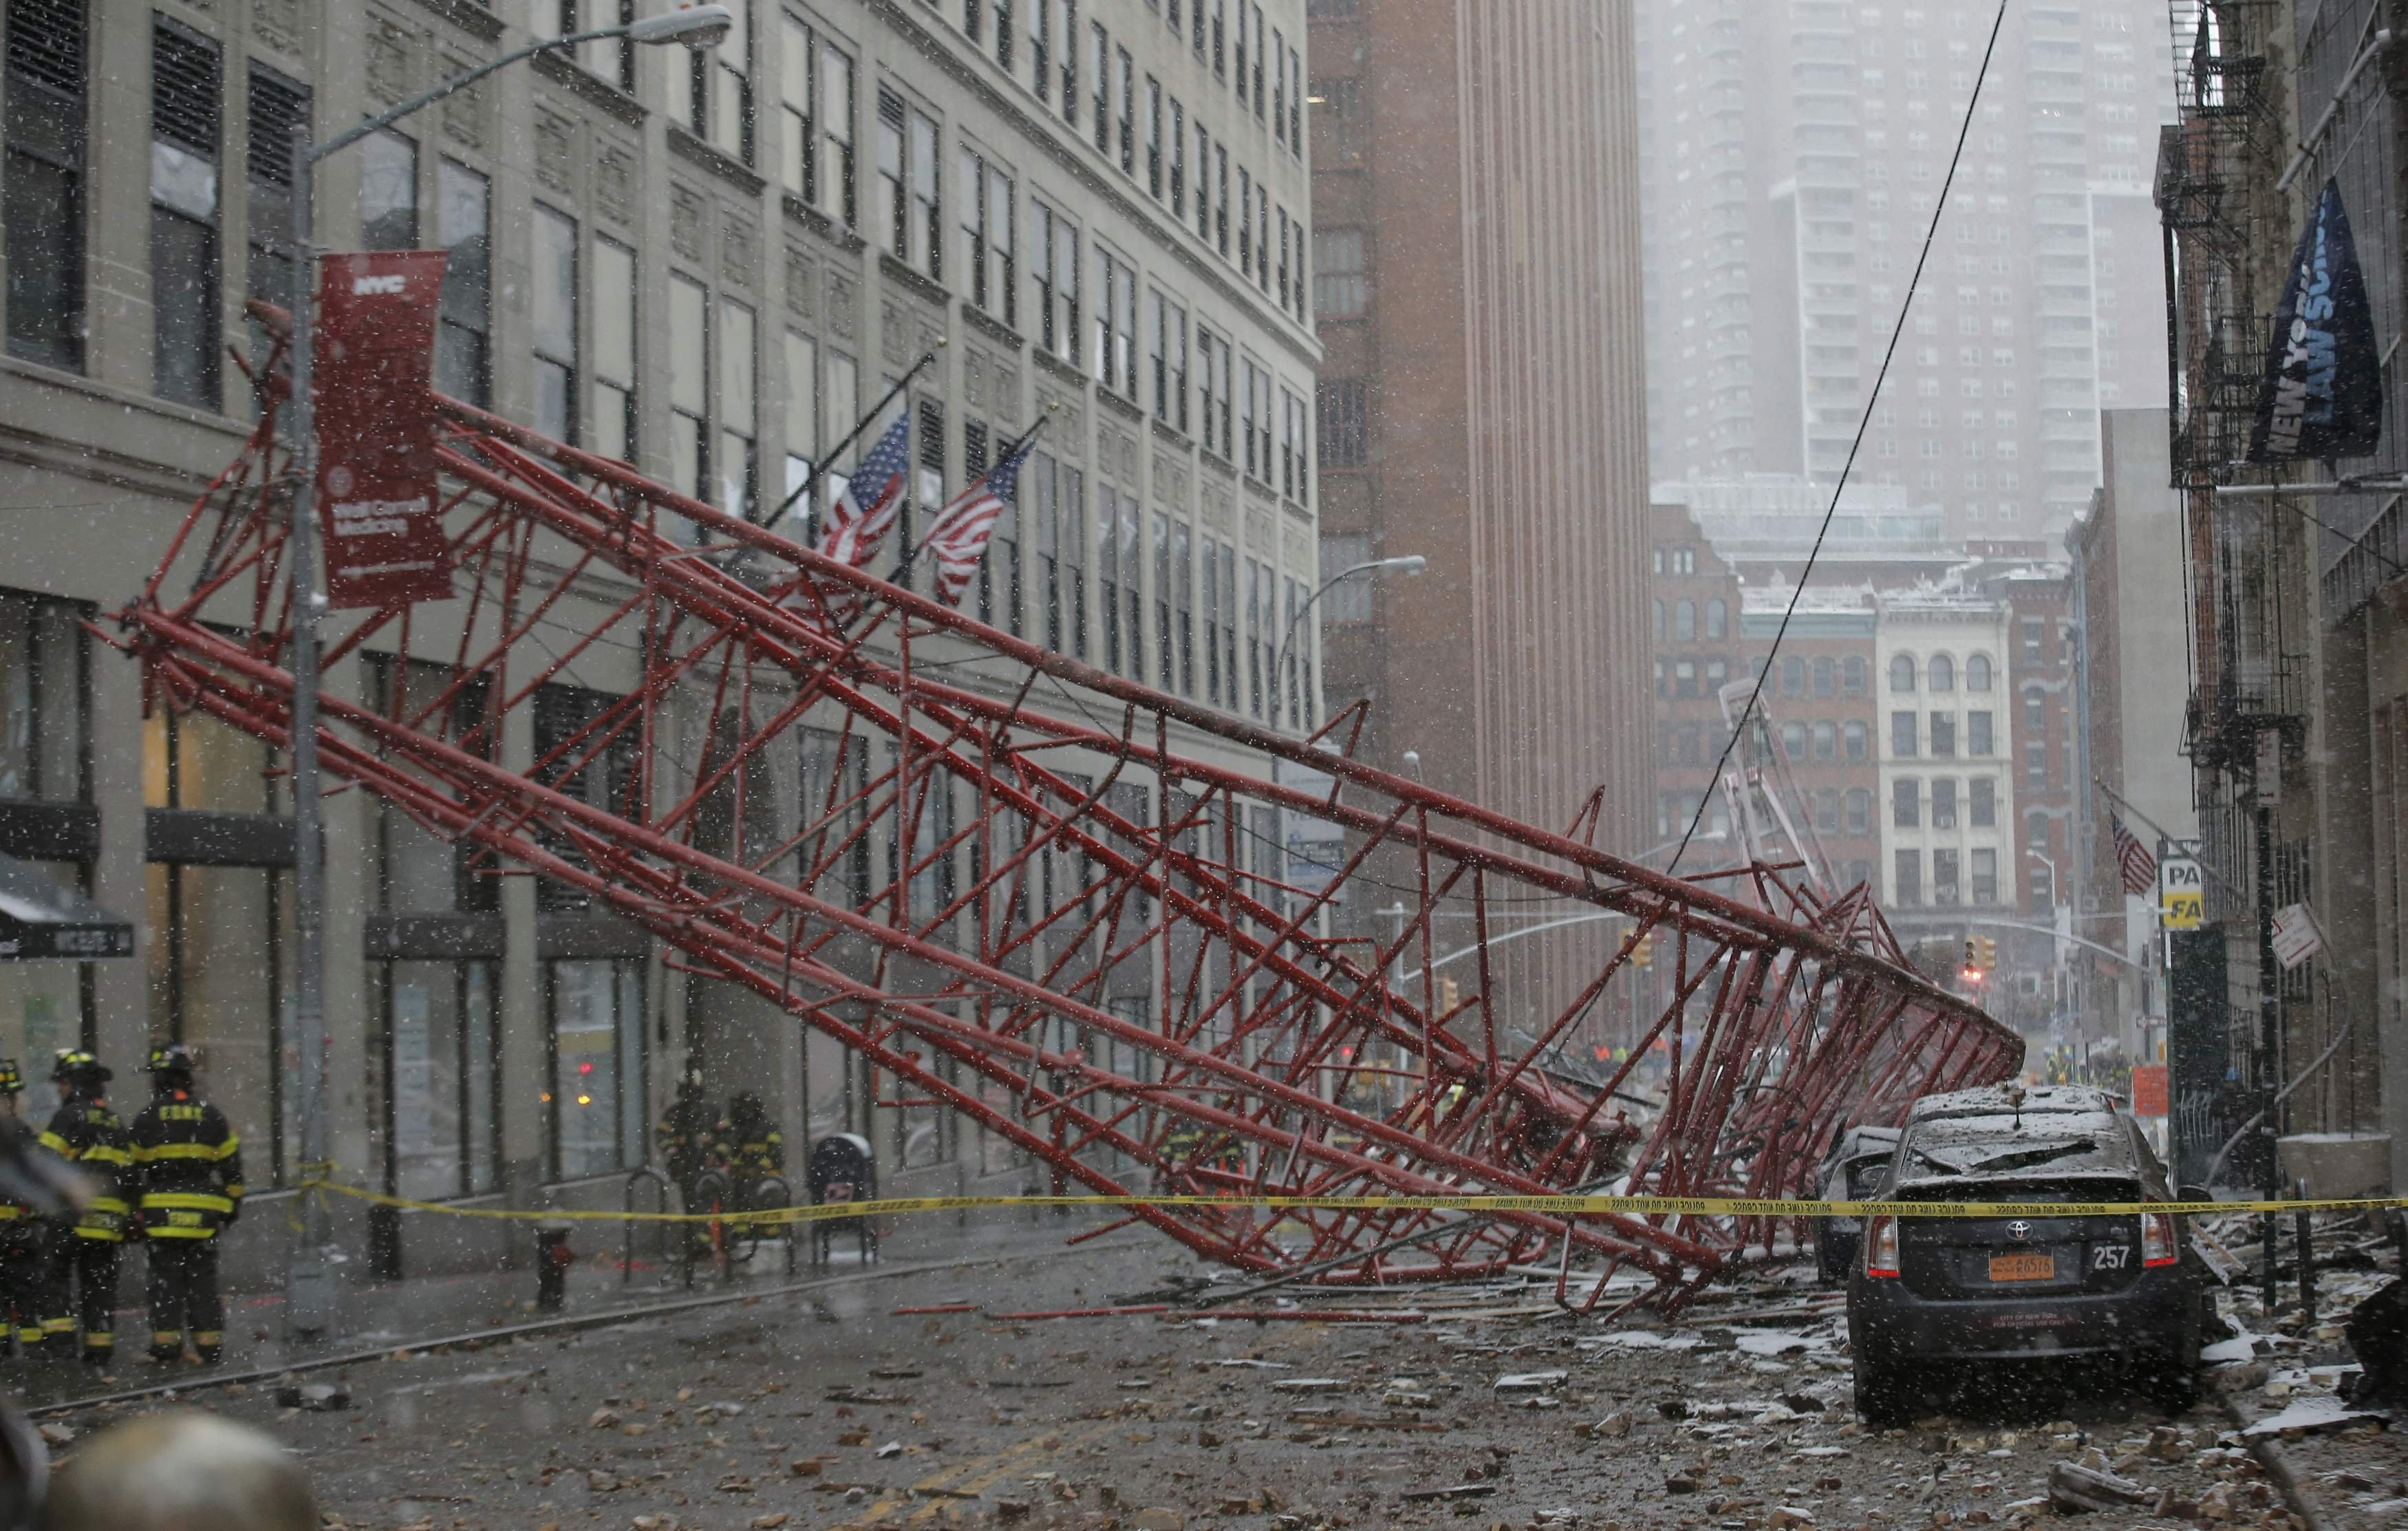 Emergency crews survey a massive construction crane collapse on a street in downtown Manhattan in New York City, on Feb. 5, 2016.